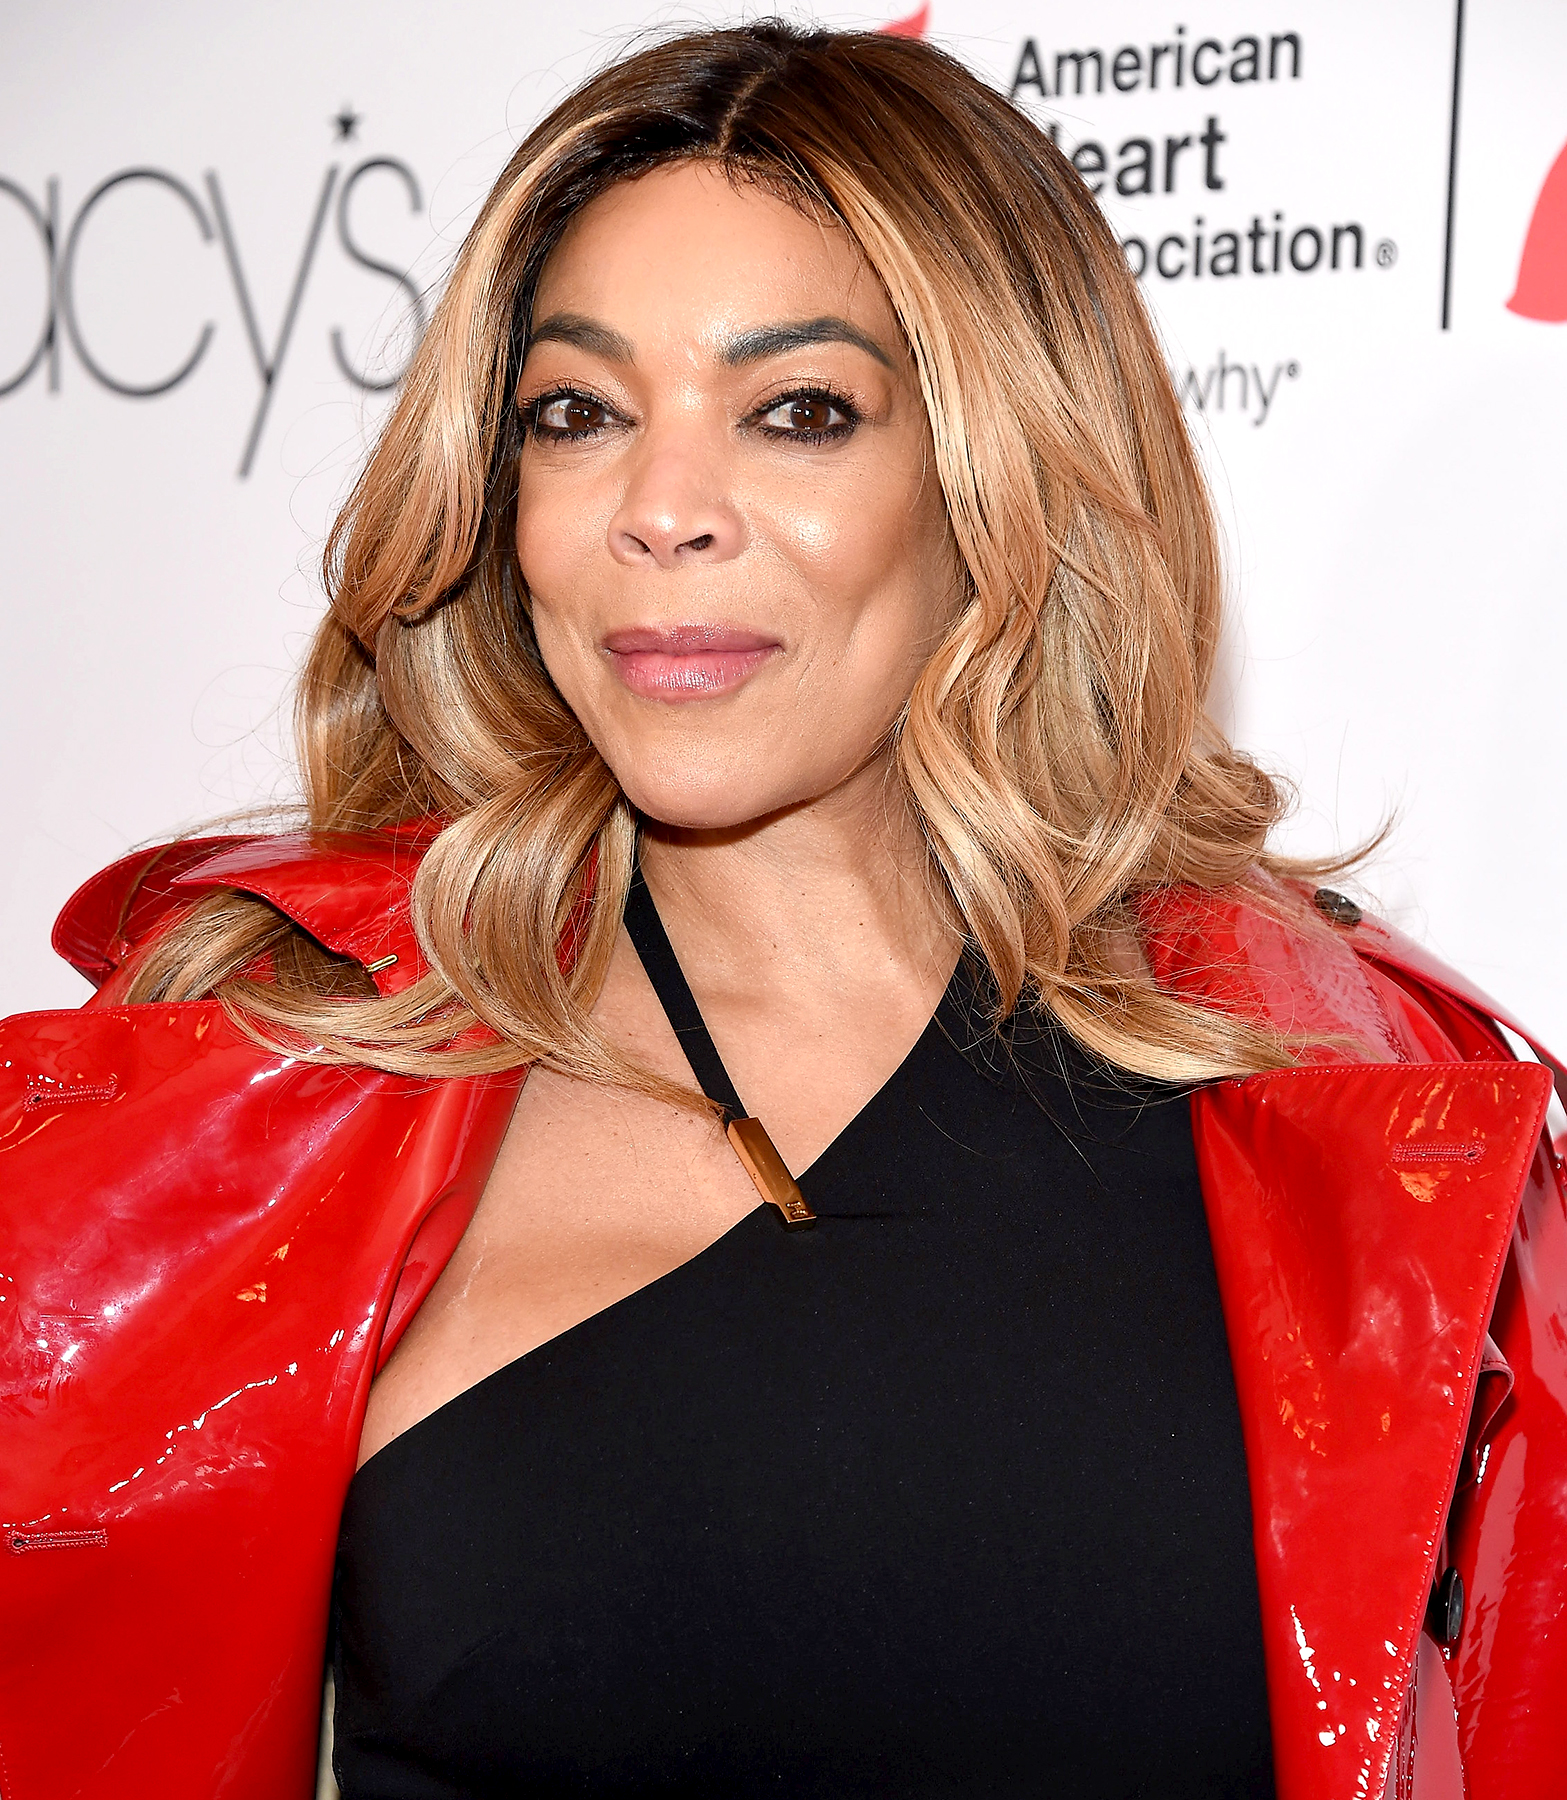 Wendy Williams (actress) nudes (52 photos), Tits, Leaked, Feet, legs 2019